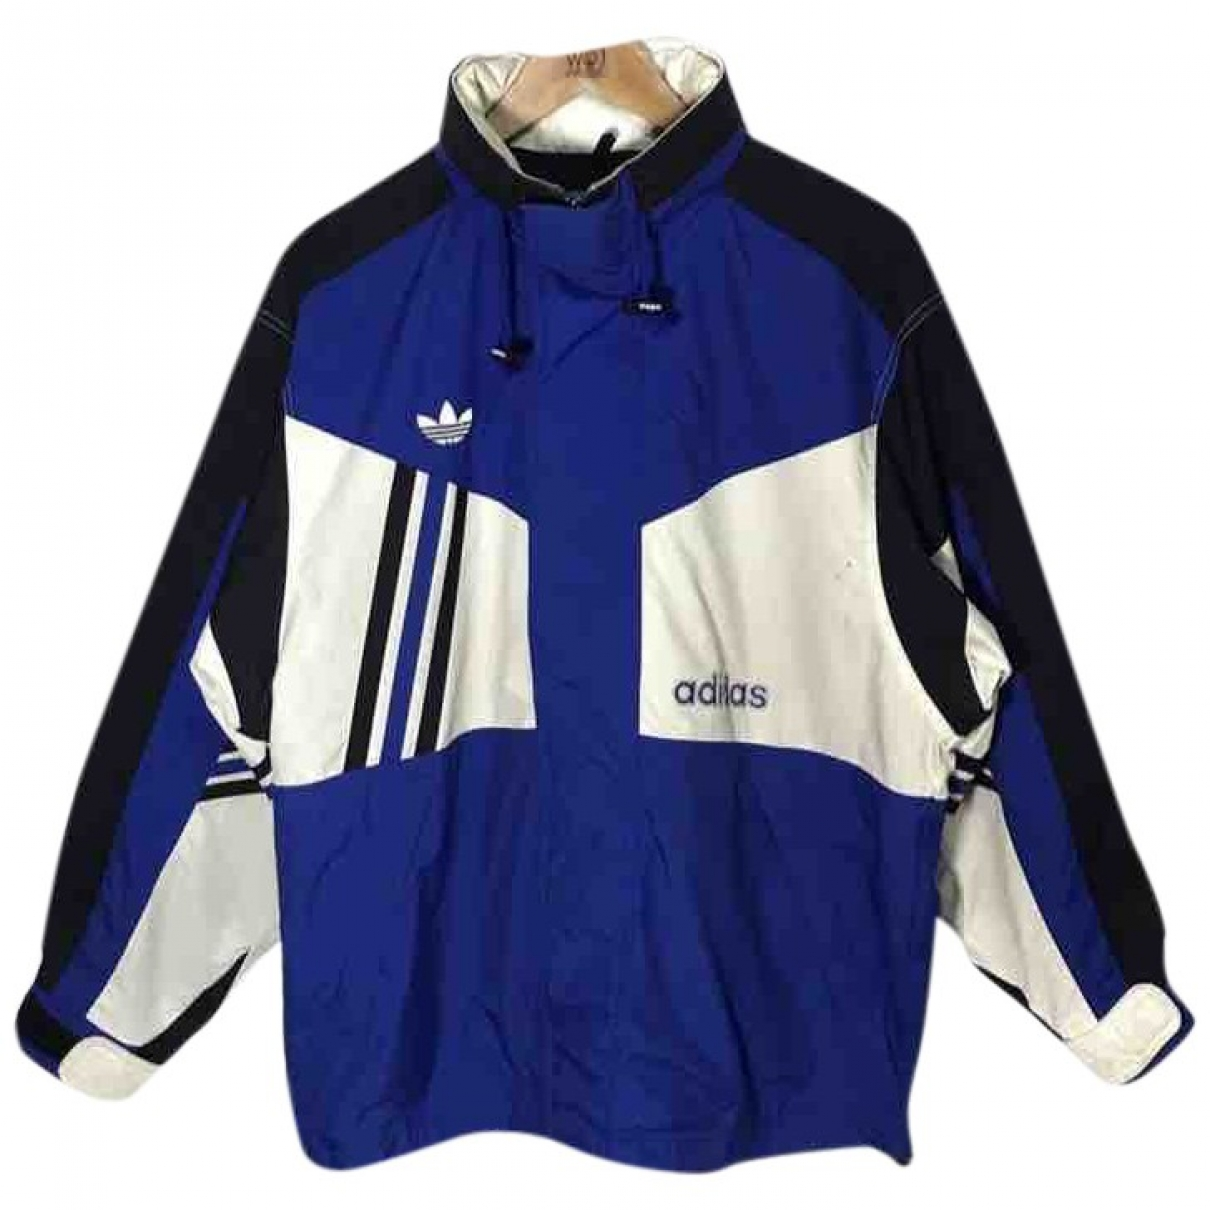 Adidas \N Blue jacket  for Men L International